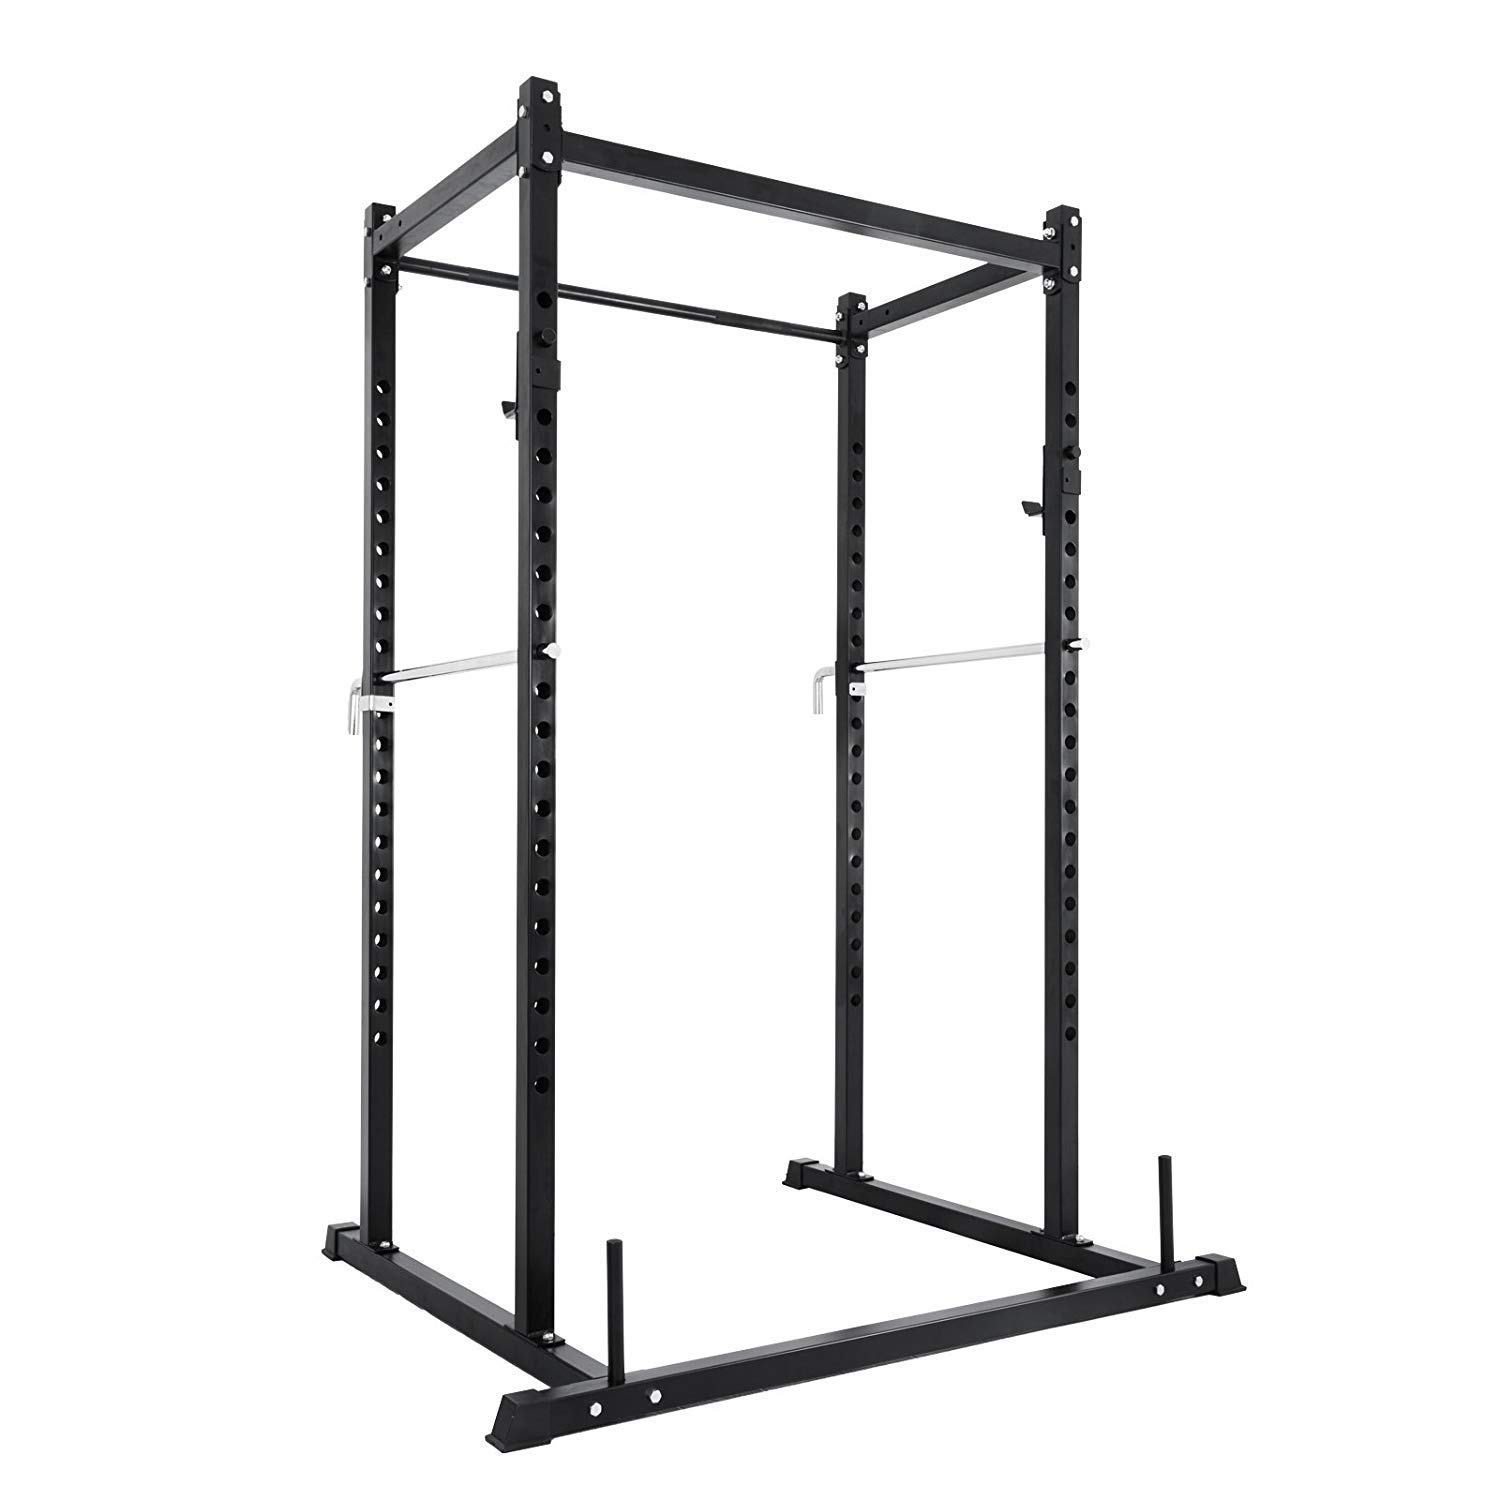 Popsport Power Rack Fitnes Strength Training Squat Rack Cage Bench Power Rack Cage Adjustable Bar for Fitness Muscle Building (ZHPK-10) by Popsport